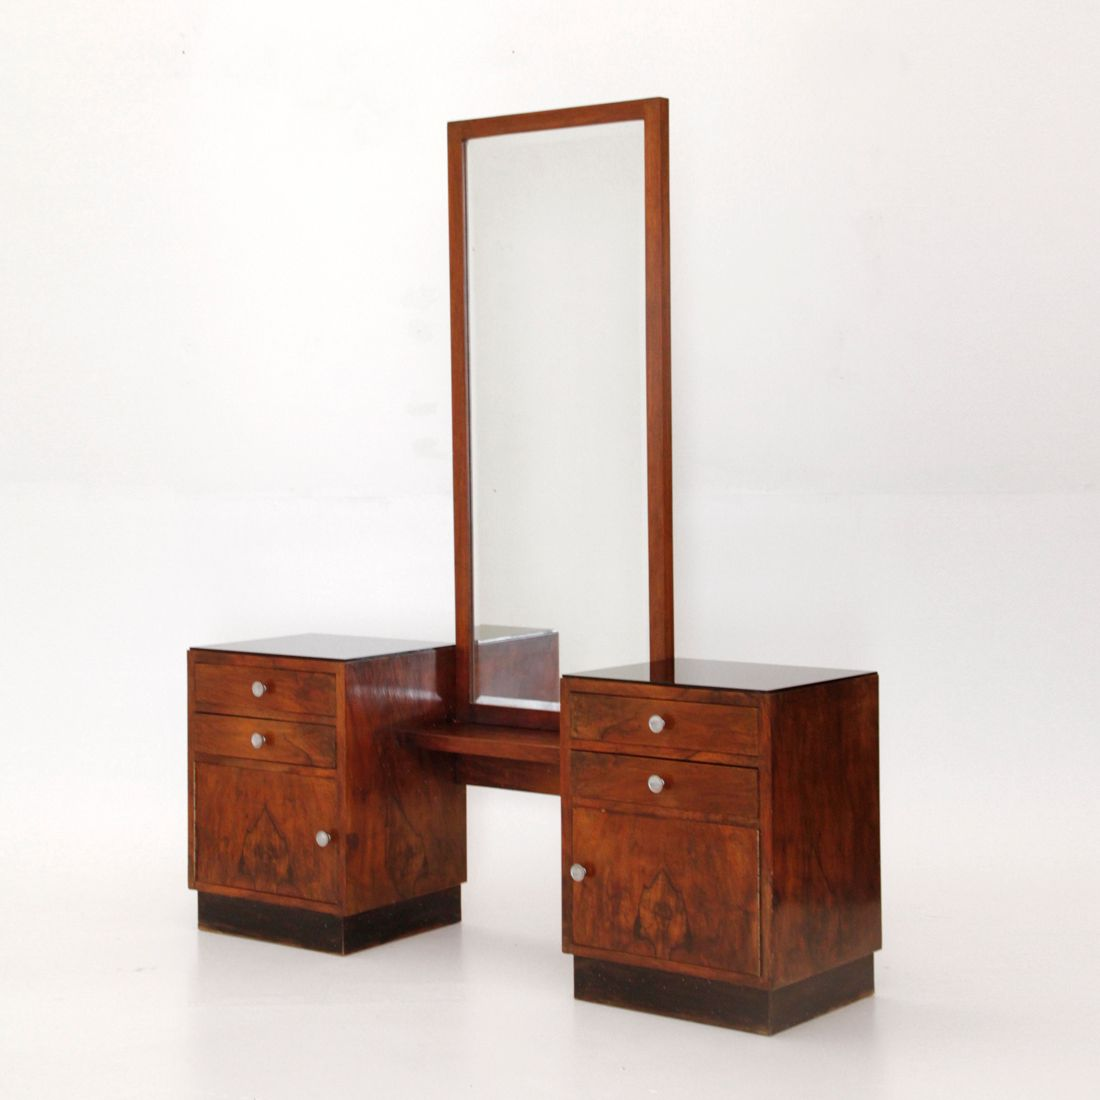 Dressing table and mirror s for sale at pamono